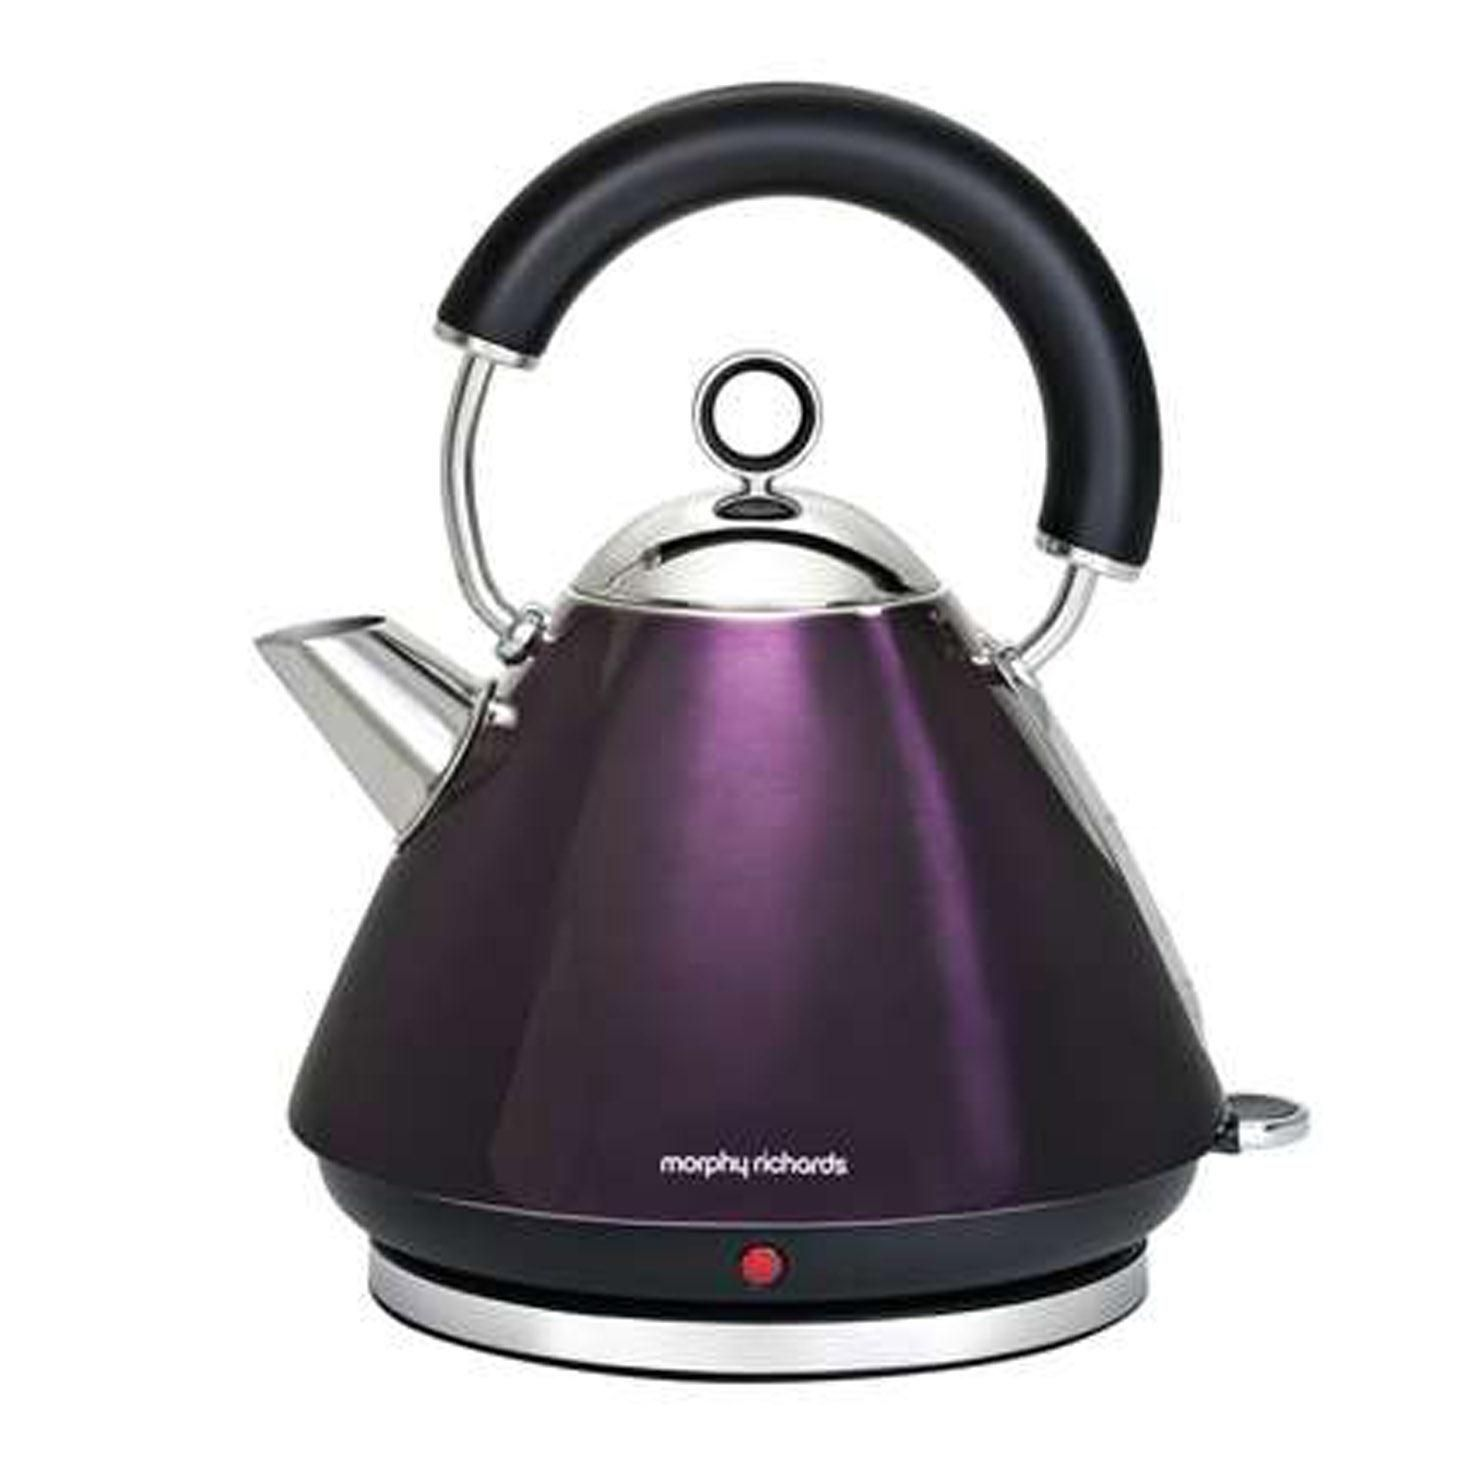 Morphy Richards Accents Traditional Kettle, Plum | Traditional ...